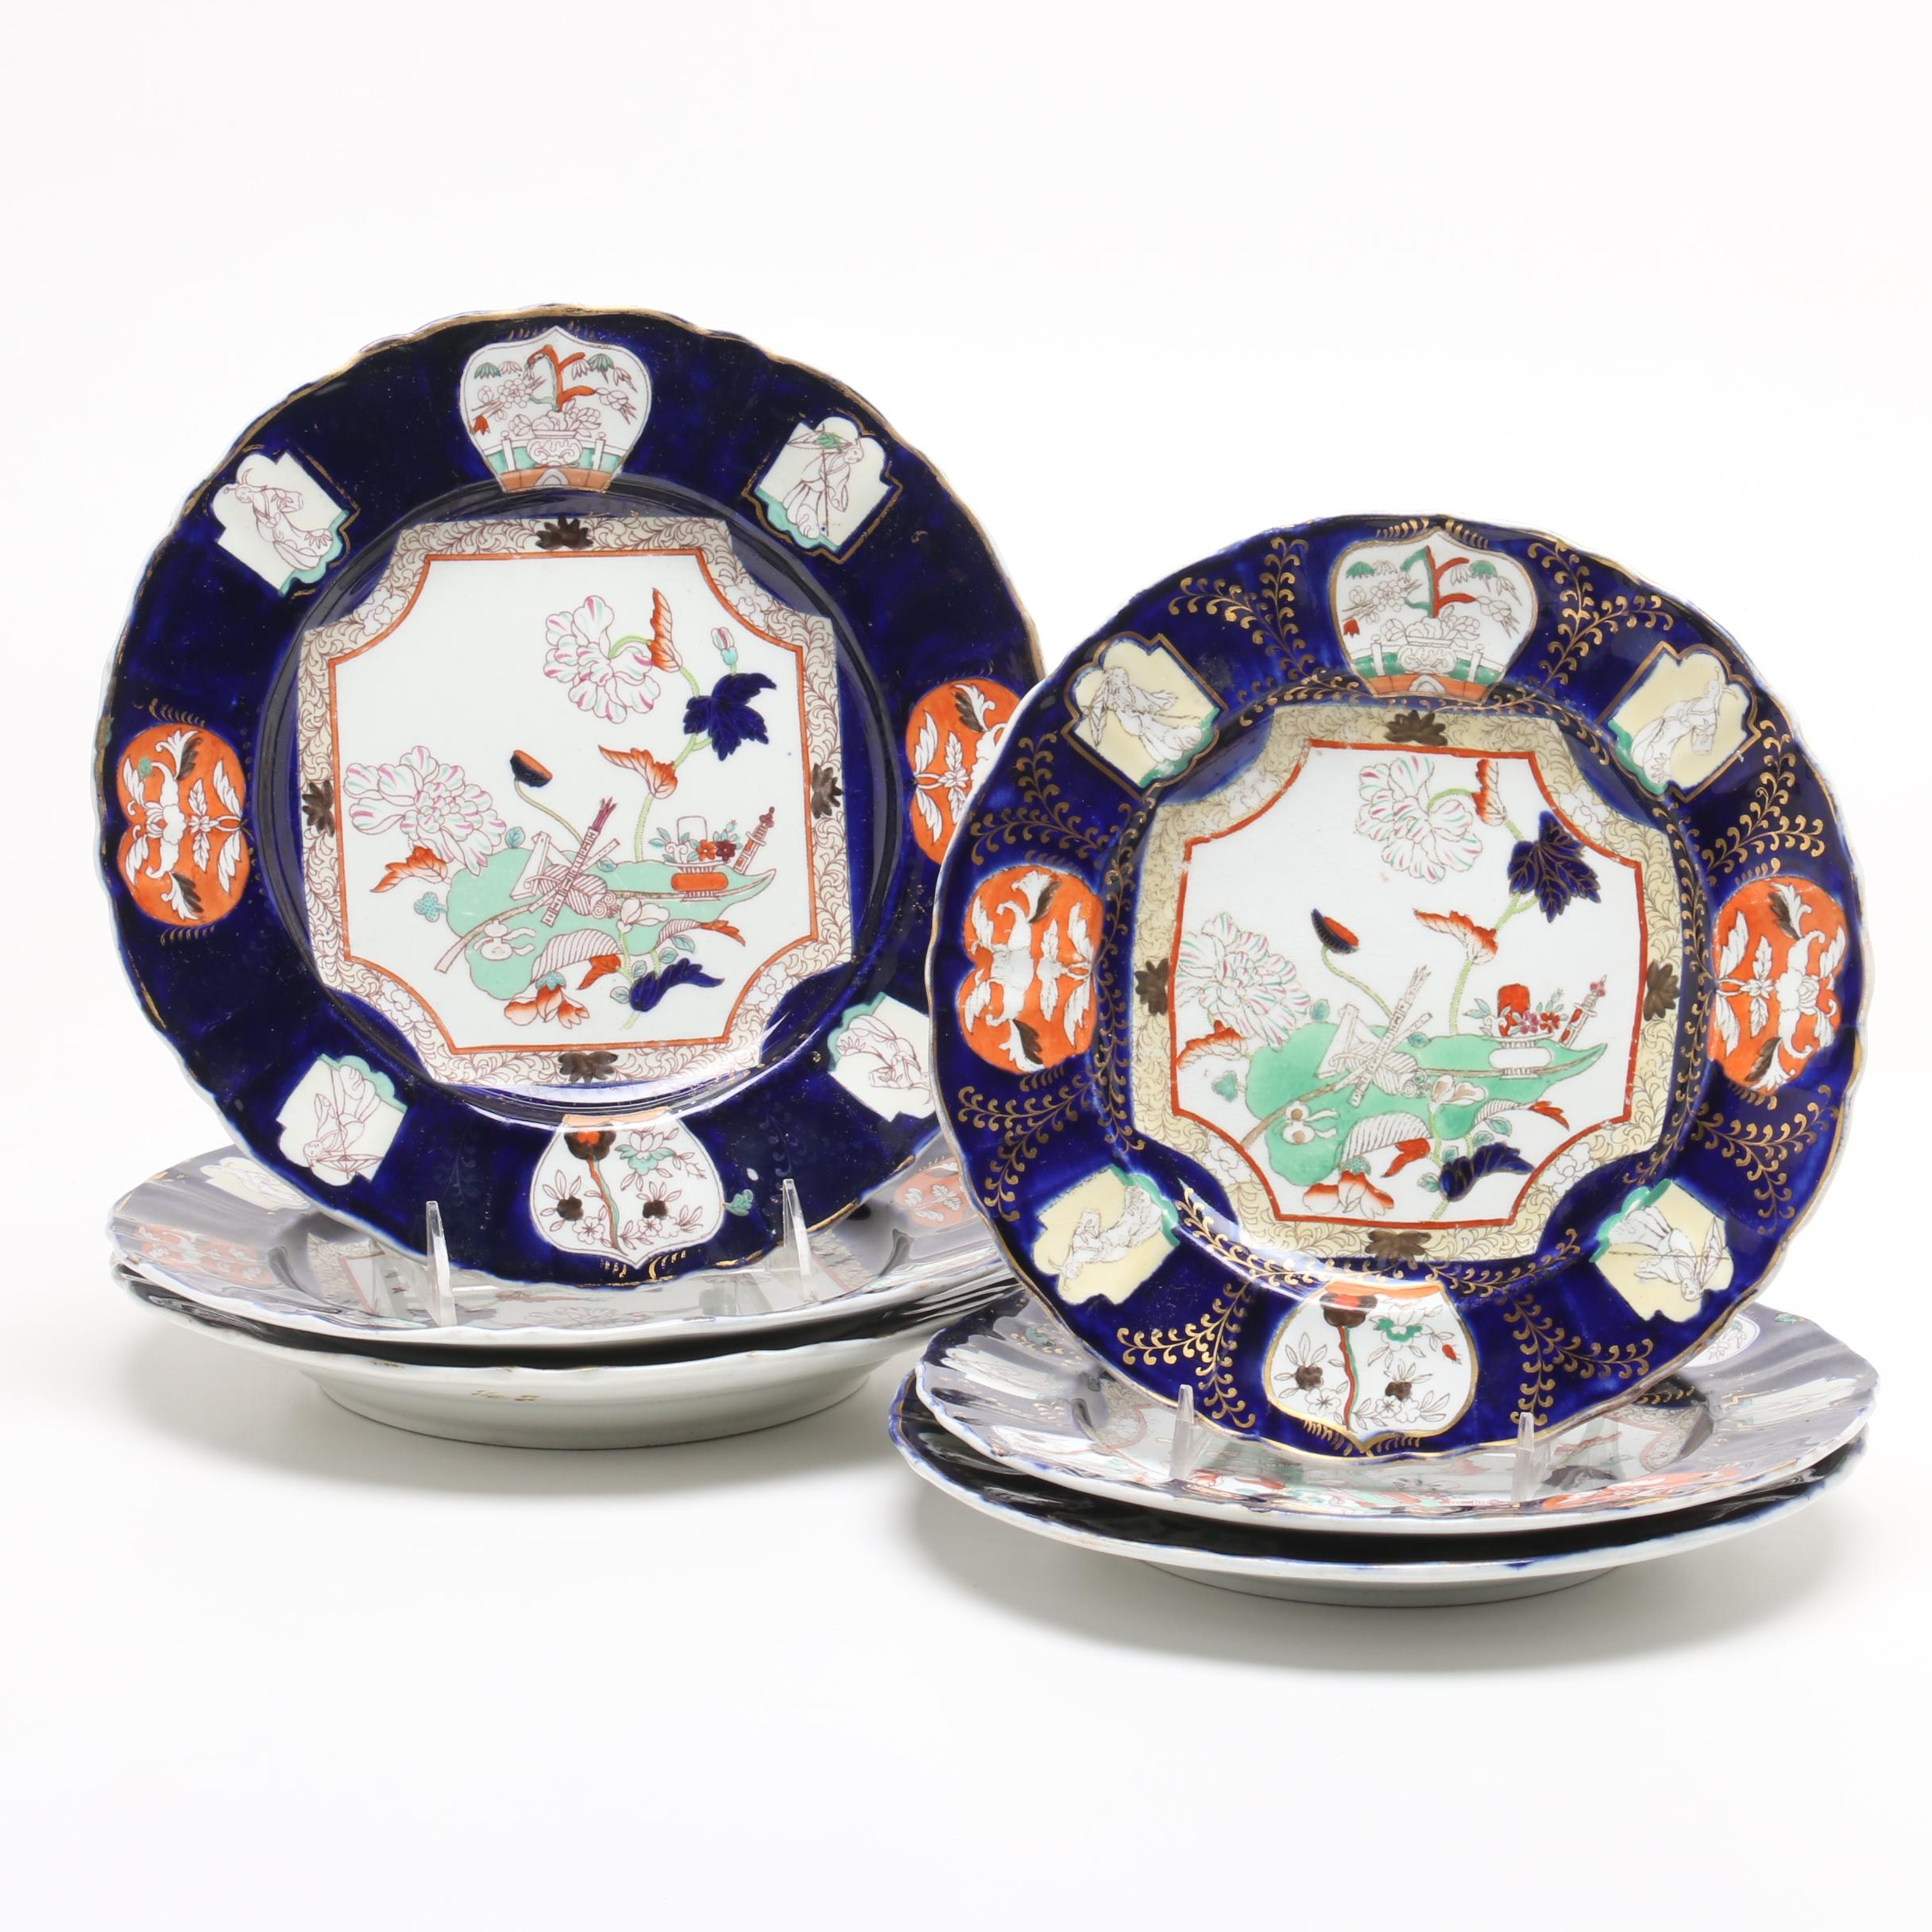 Mason's Patent Ironstone China Plates in Gilt Royal Blue